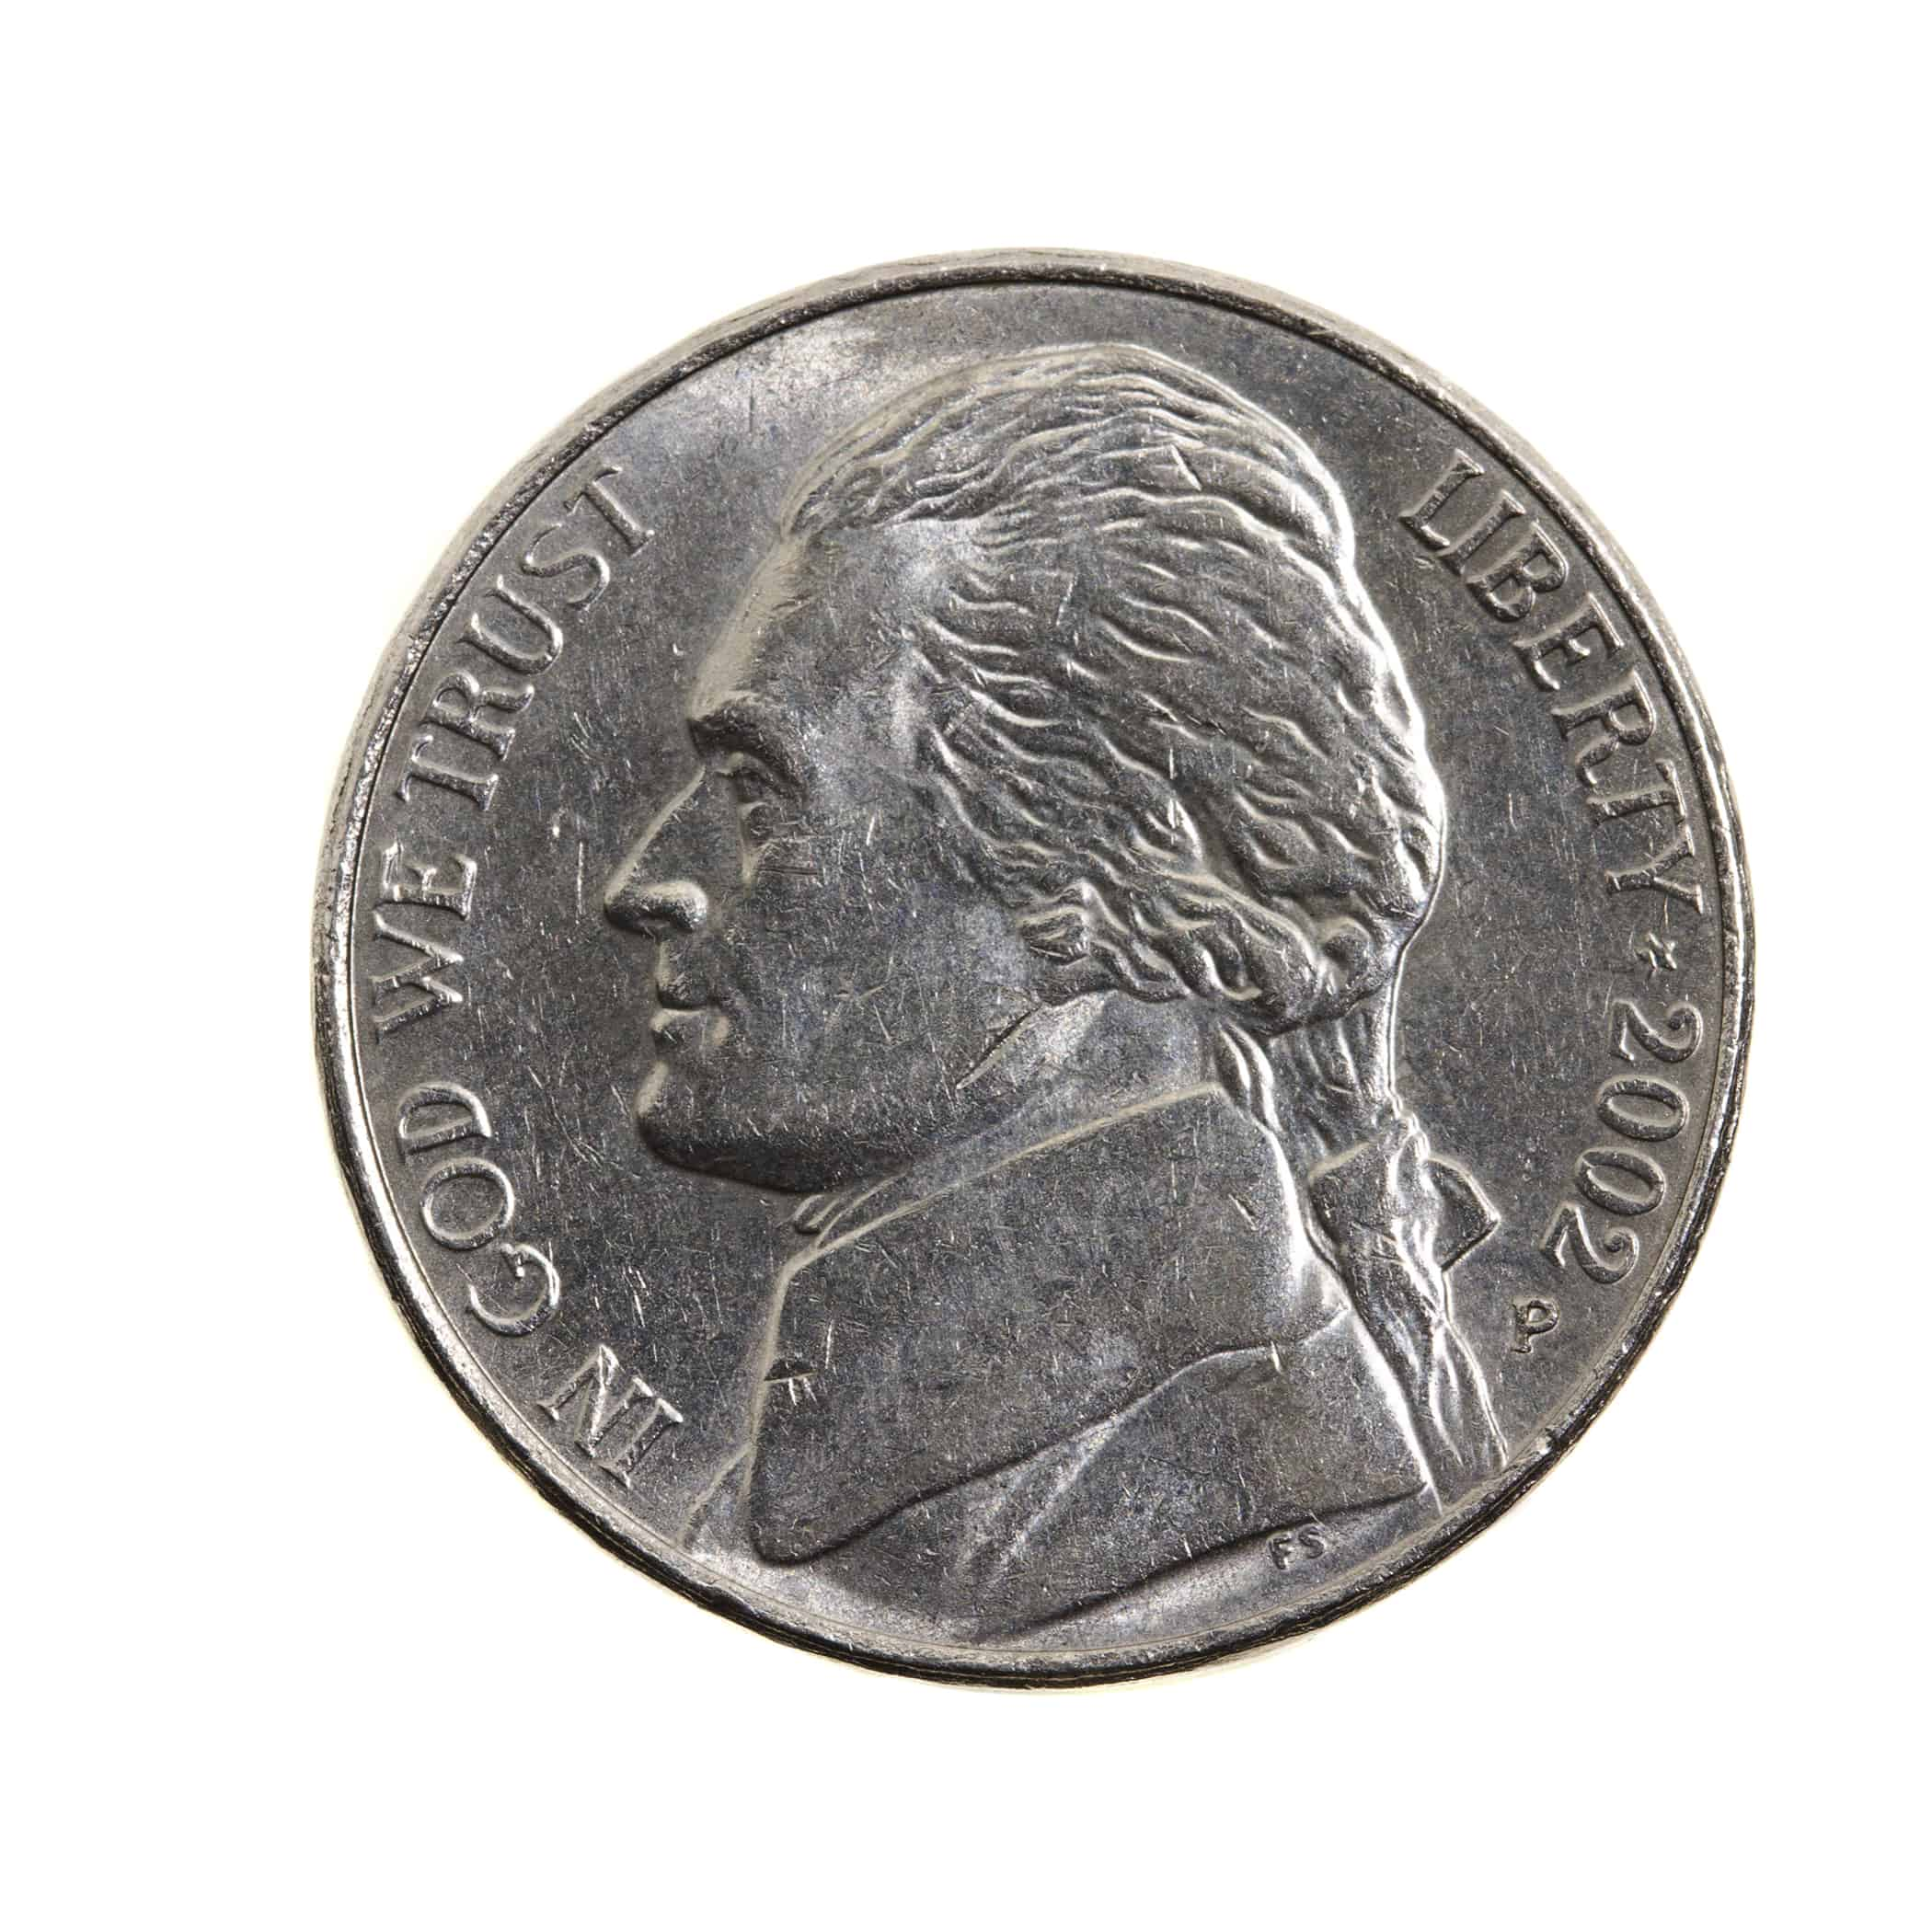 Obverse (Head) Features 5